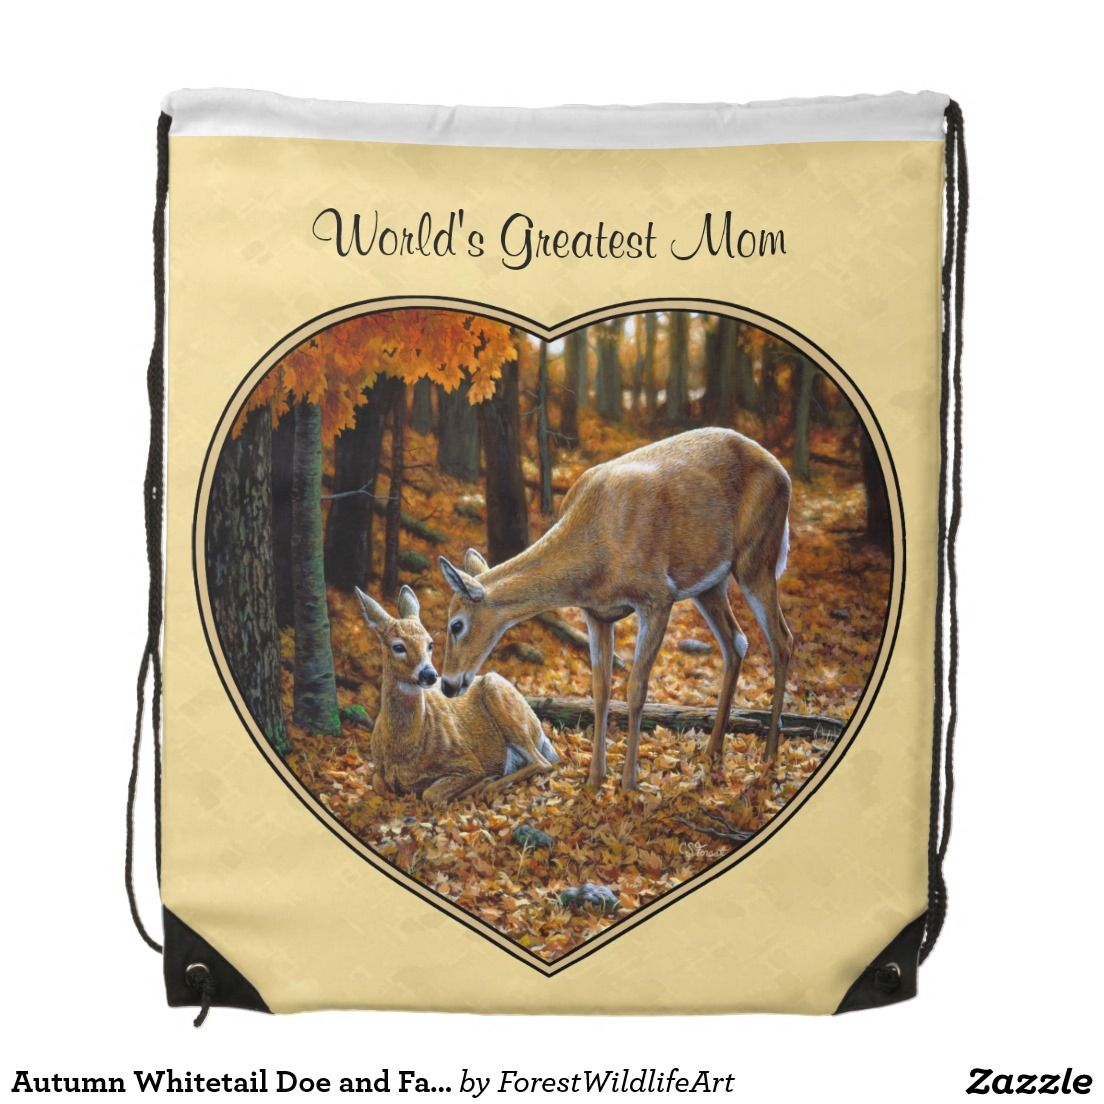 Autumn Whitetail Doe and Fawn Backpacks